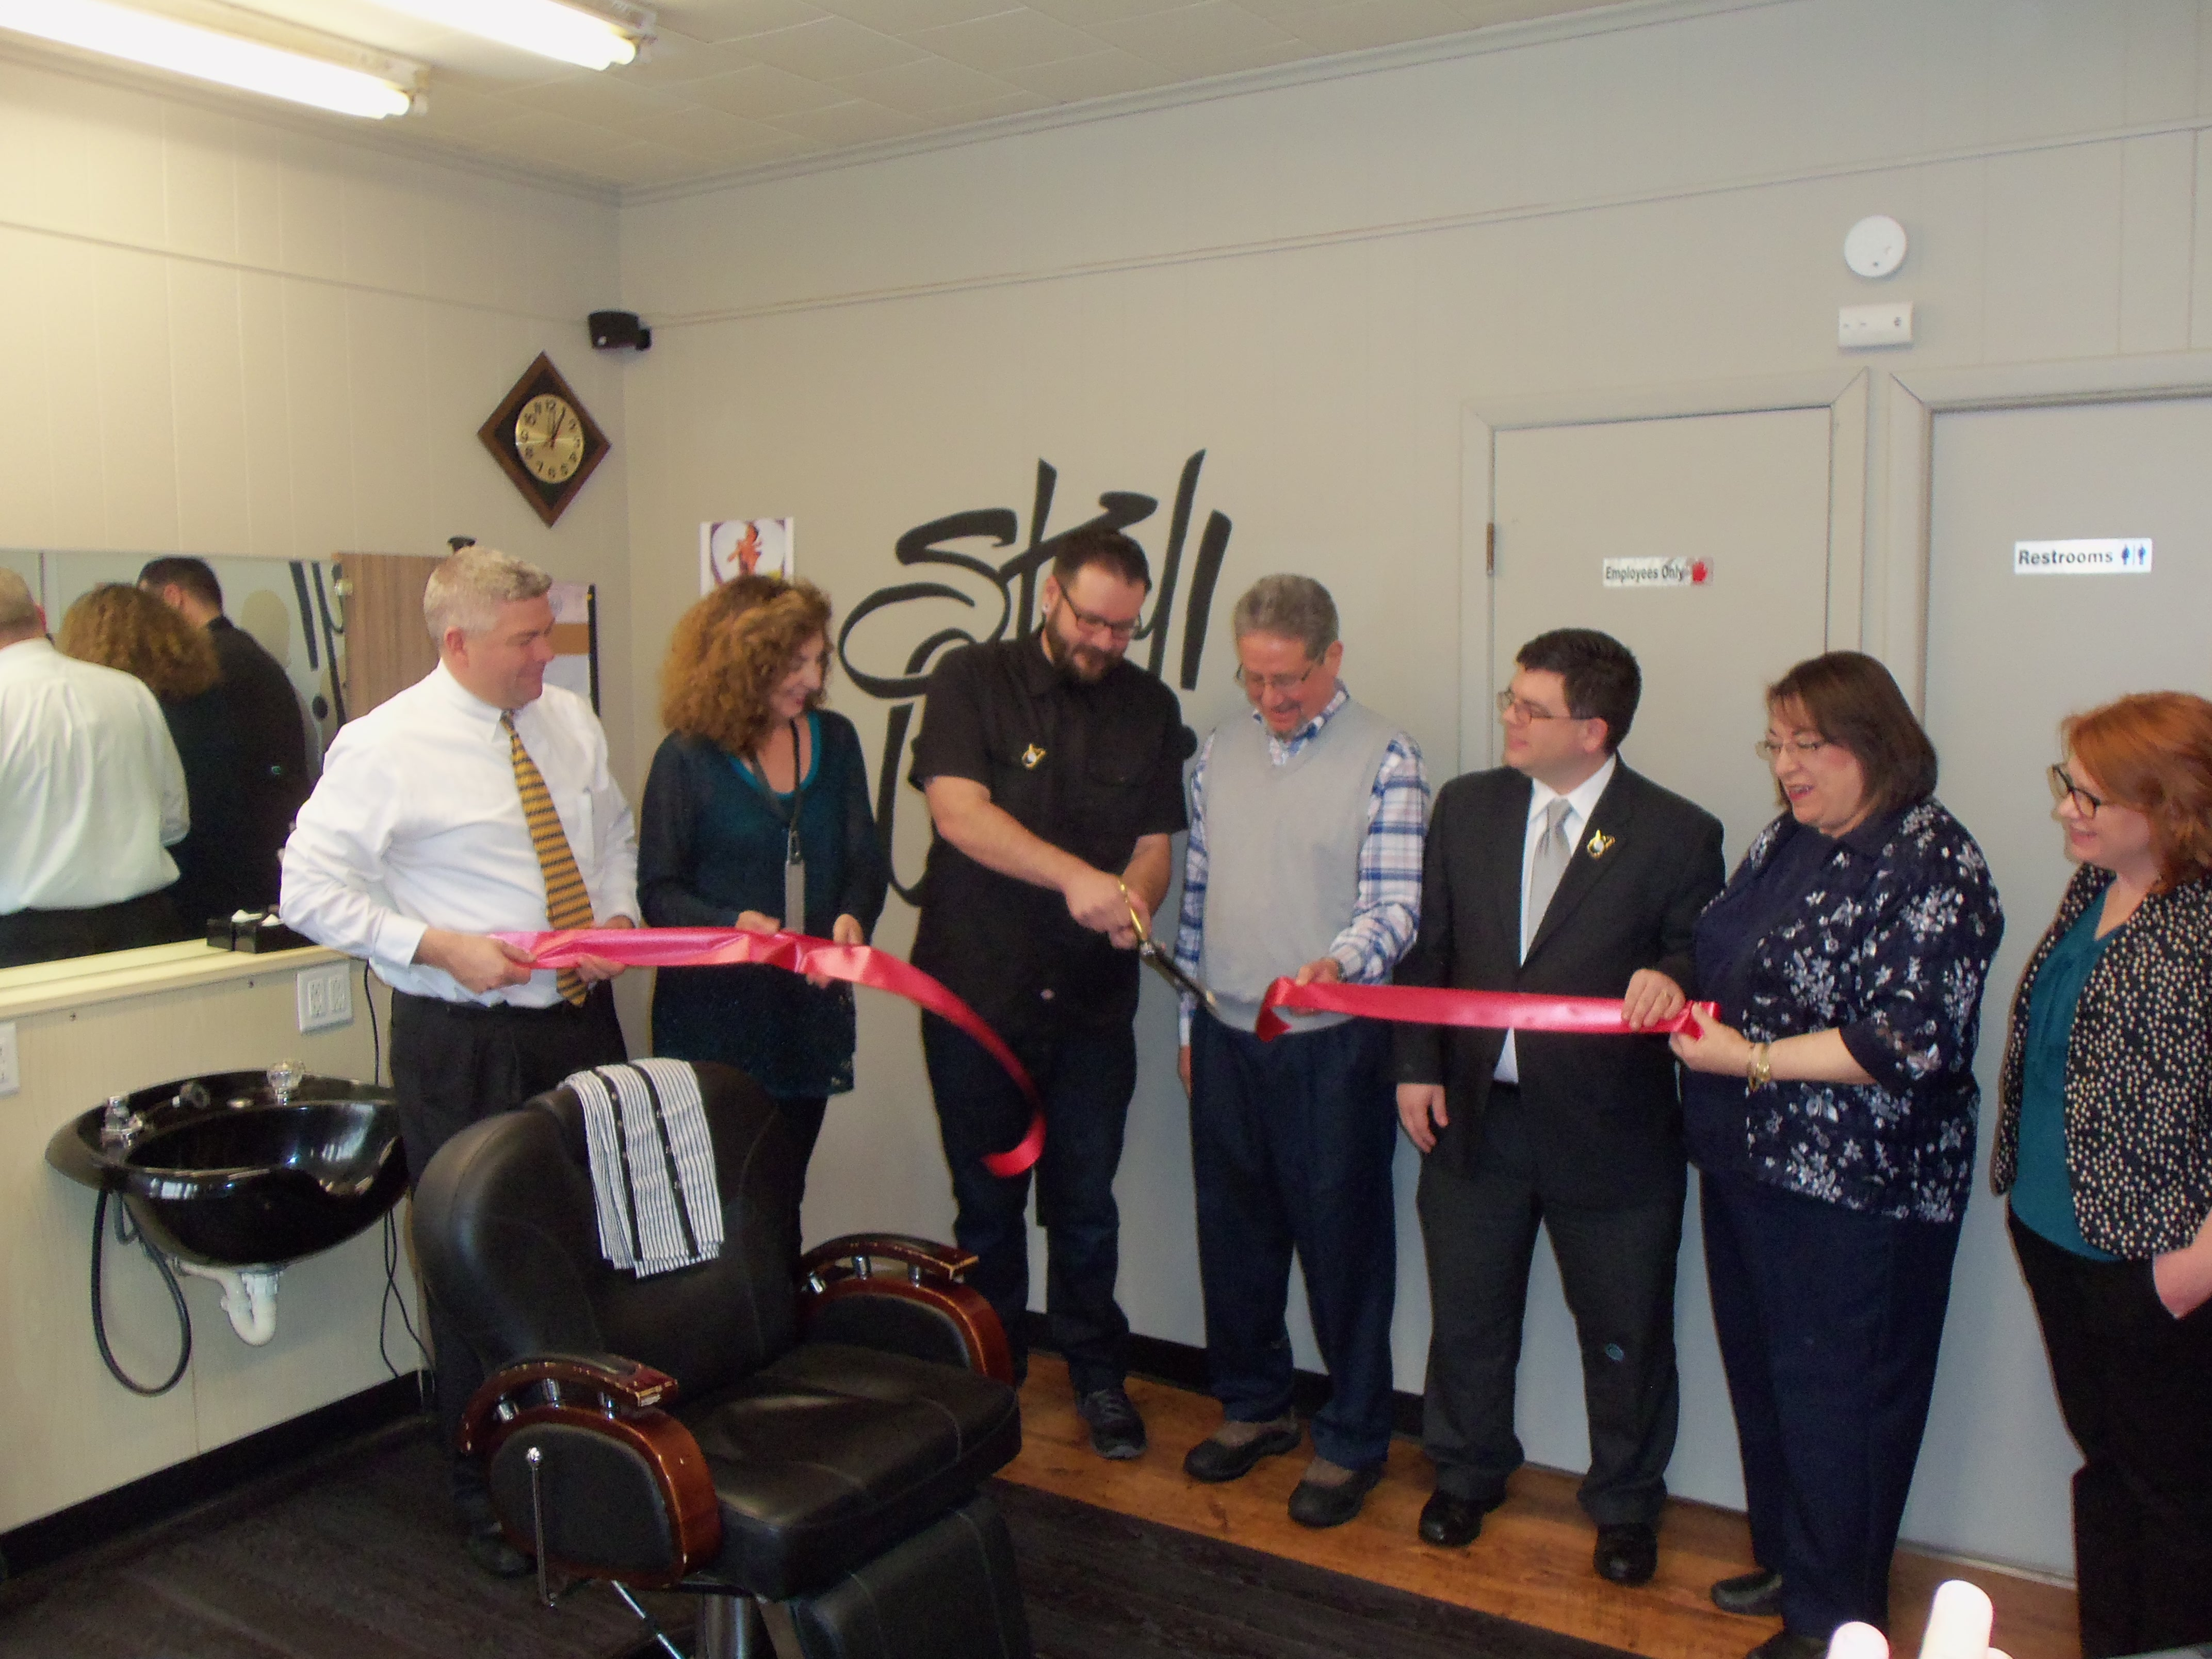 Stay Gold Barber Shop Opens in Downtown Clarksburg